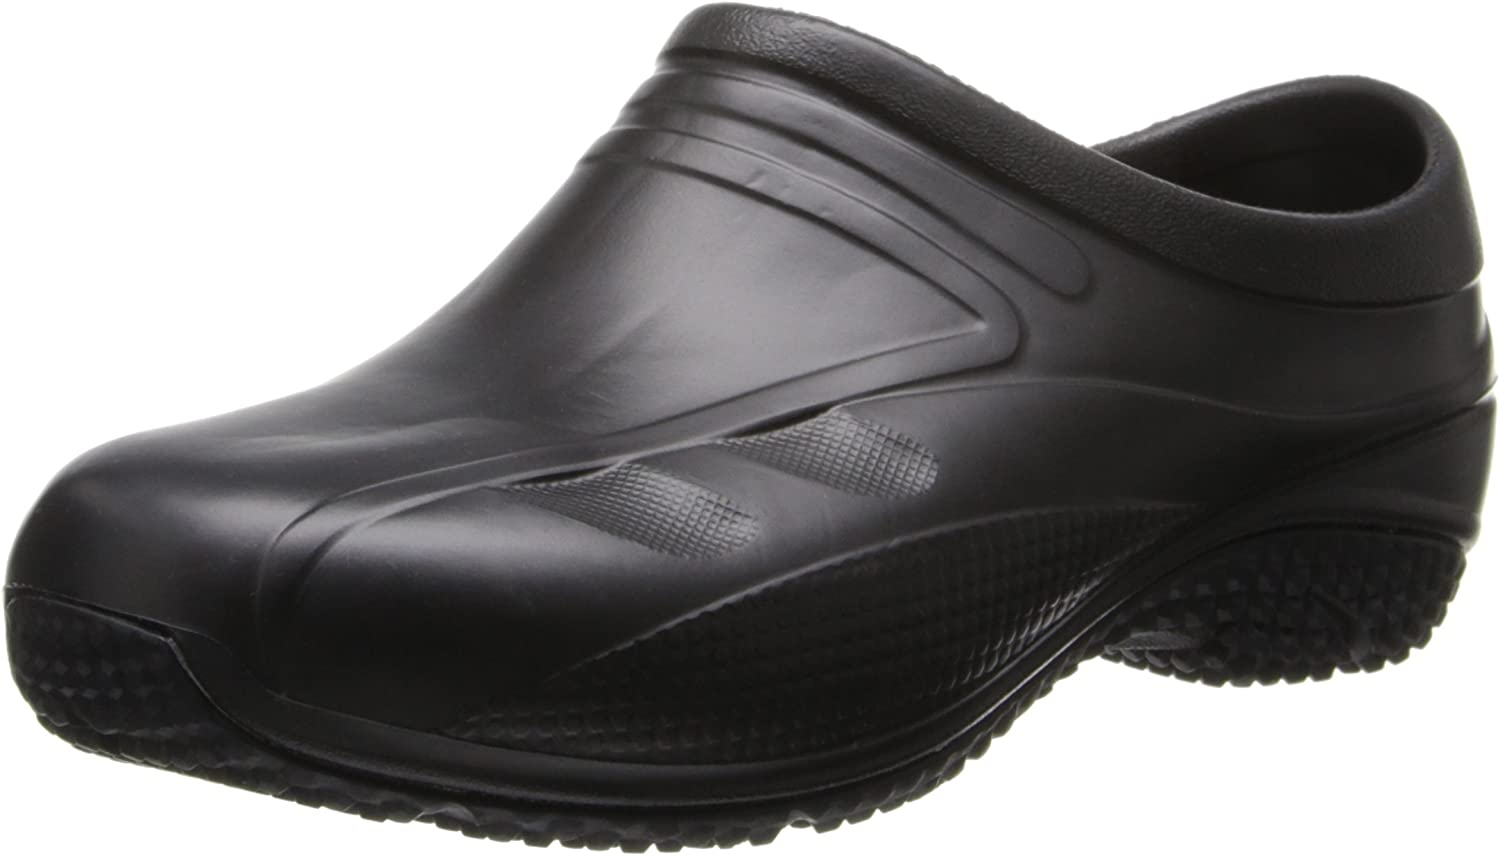 Anywear Women's Exact Health Care & Food Service shoes